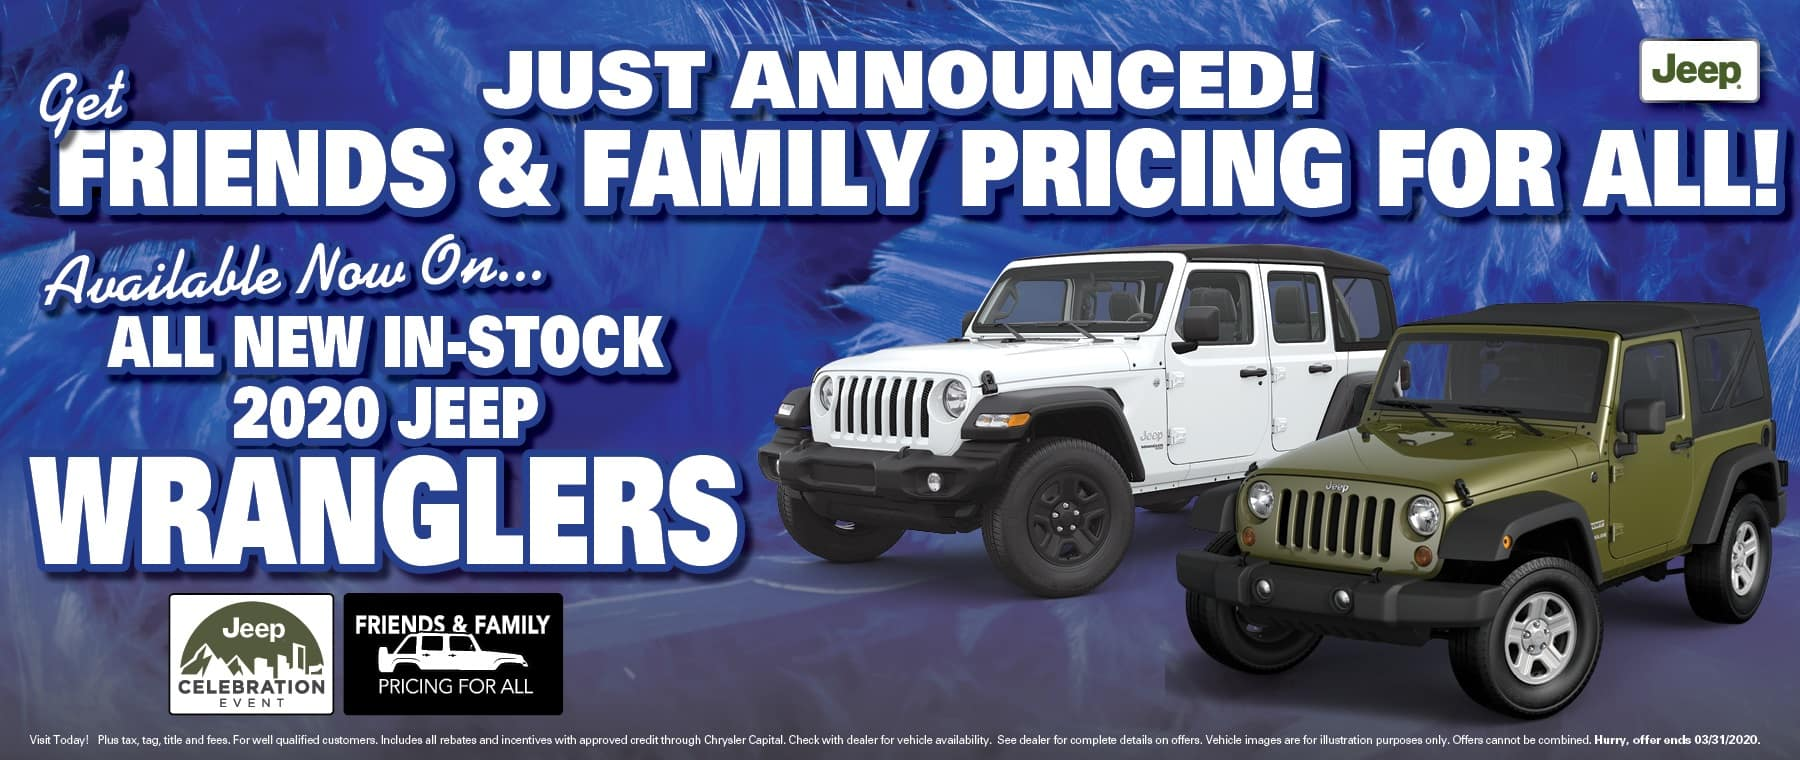 Friends and Family Wrangler Pricing